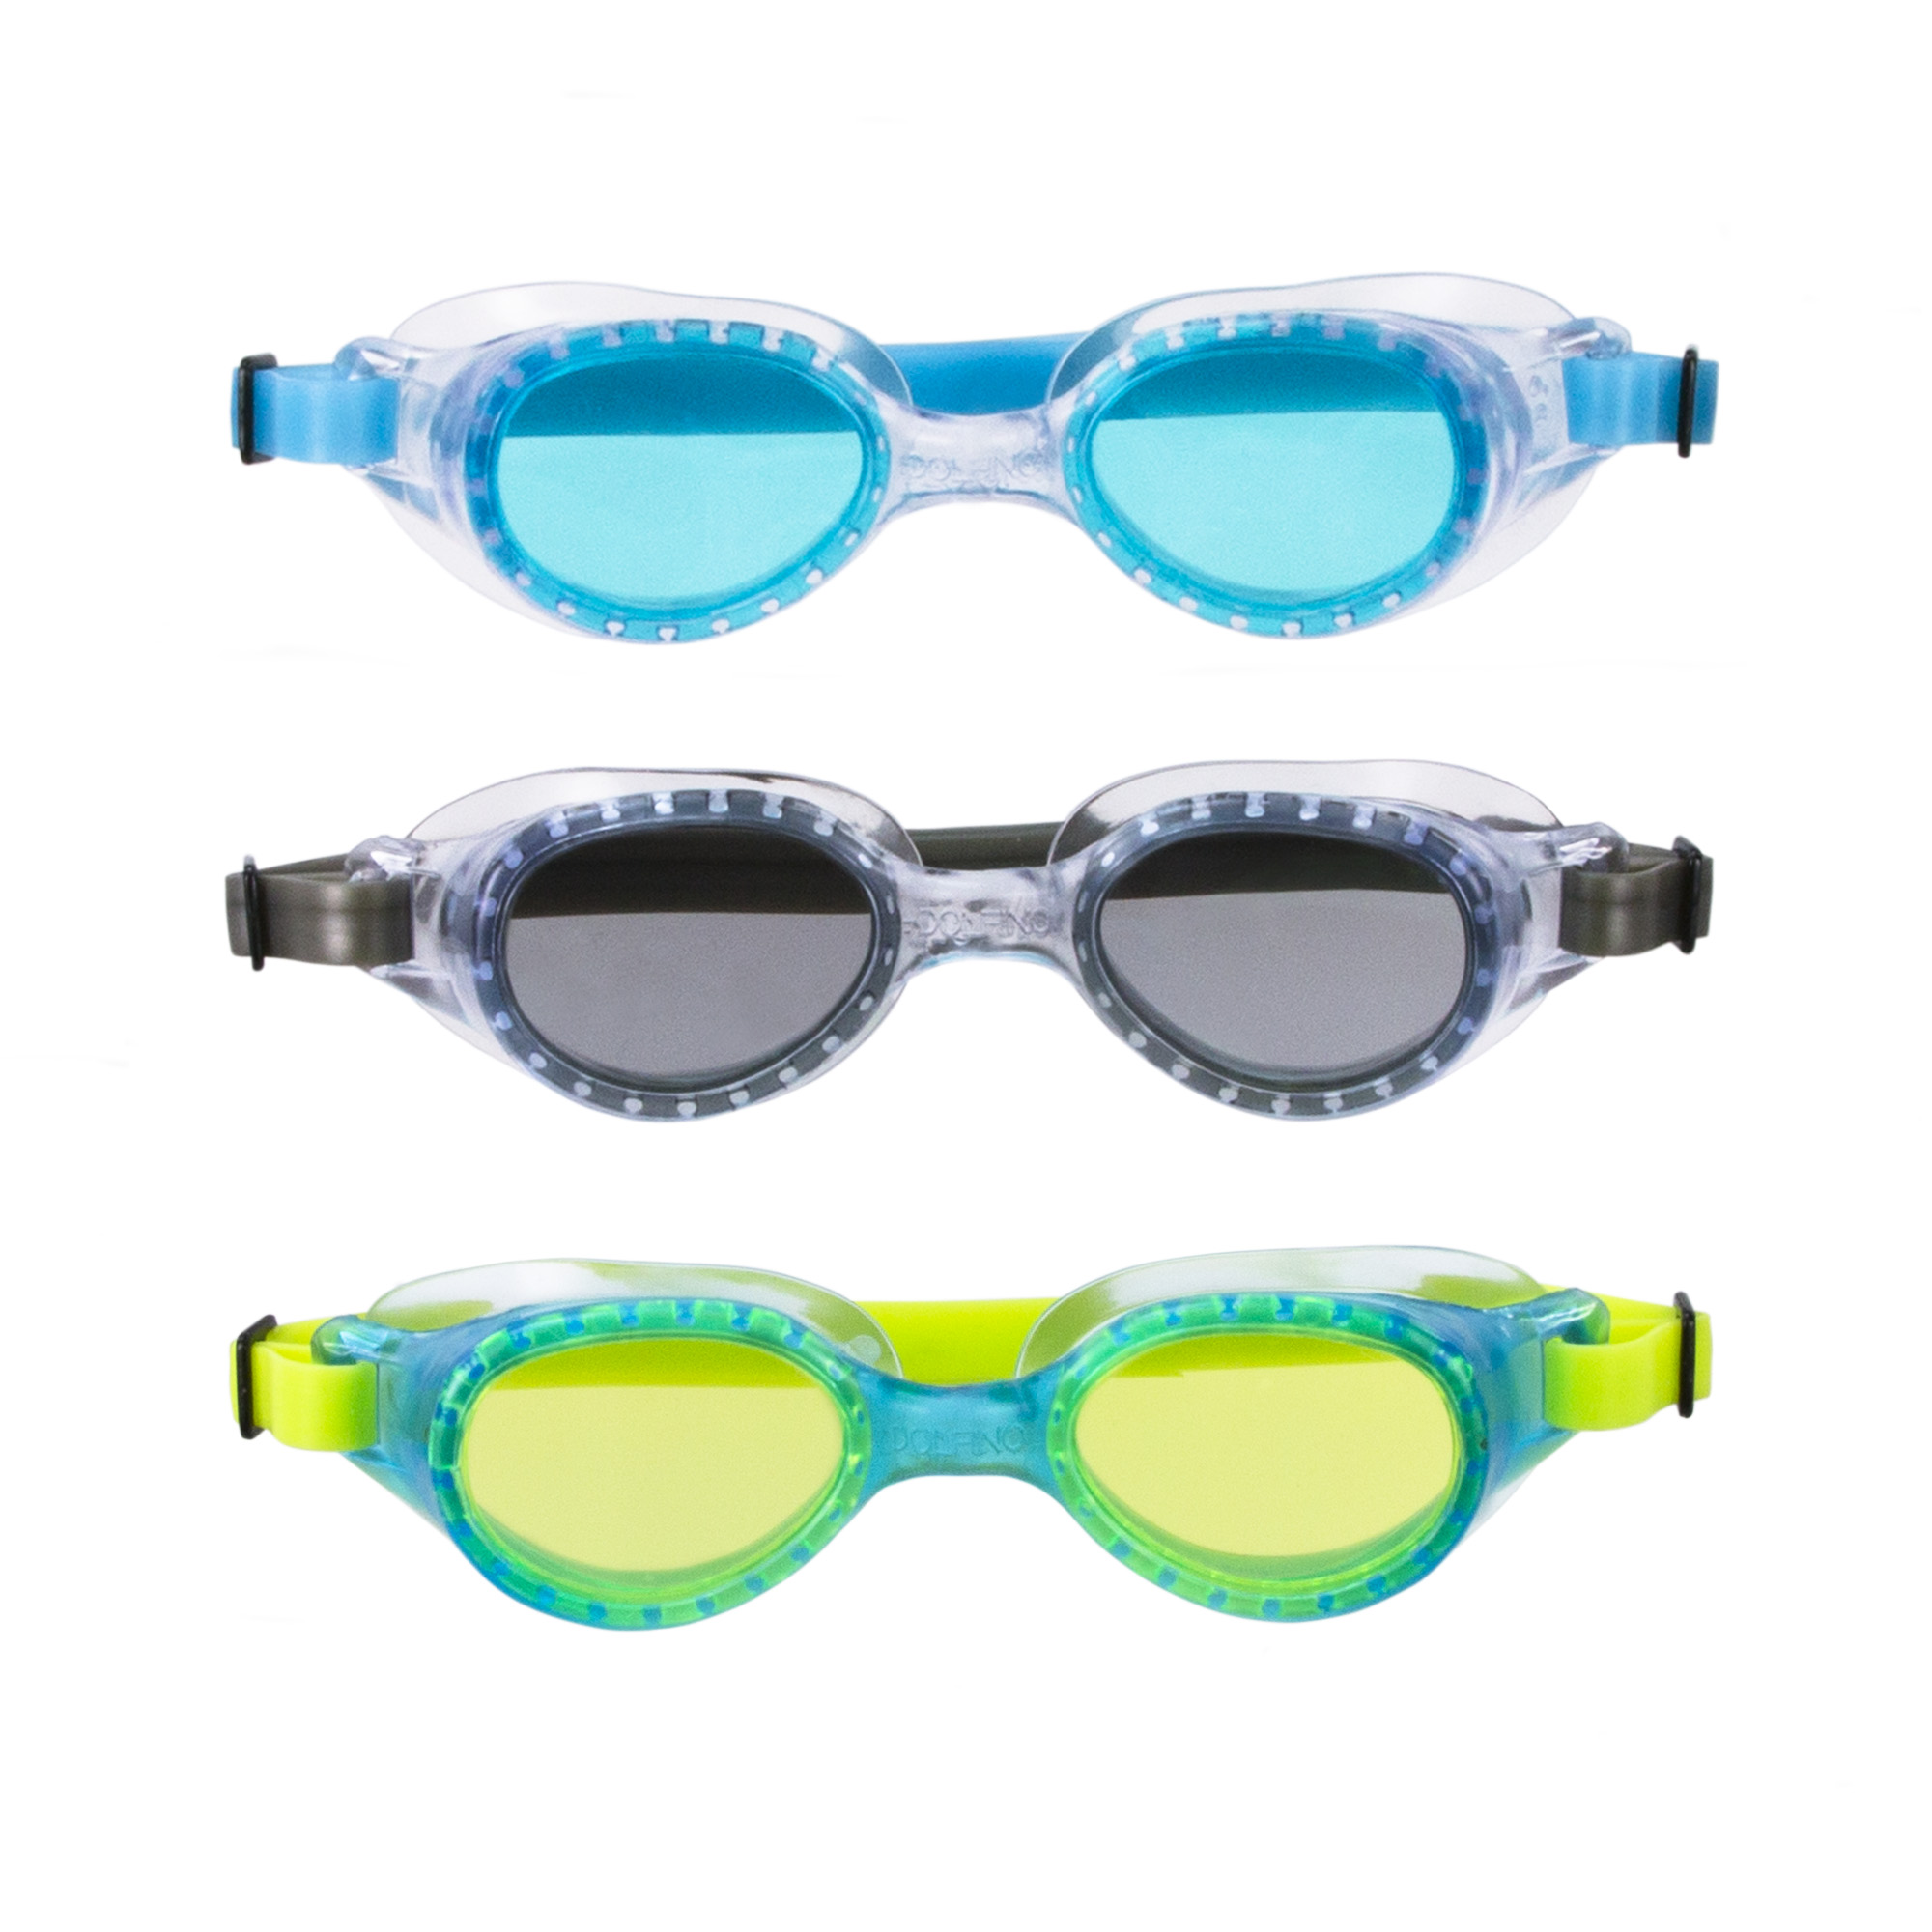 Youth 3 Pack Goggle - Green, Smoke, Turquise